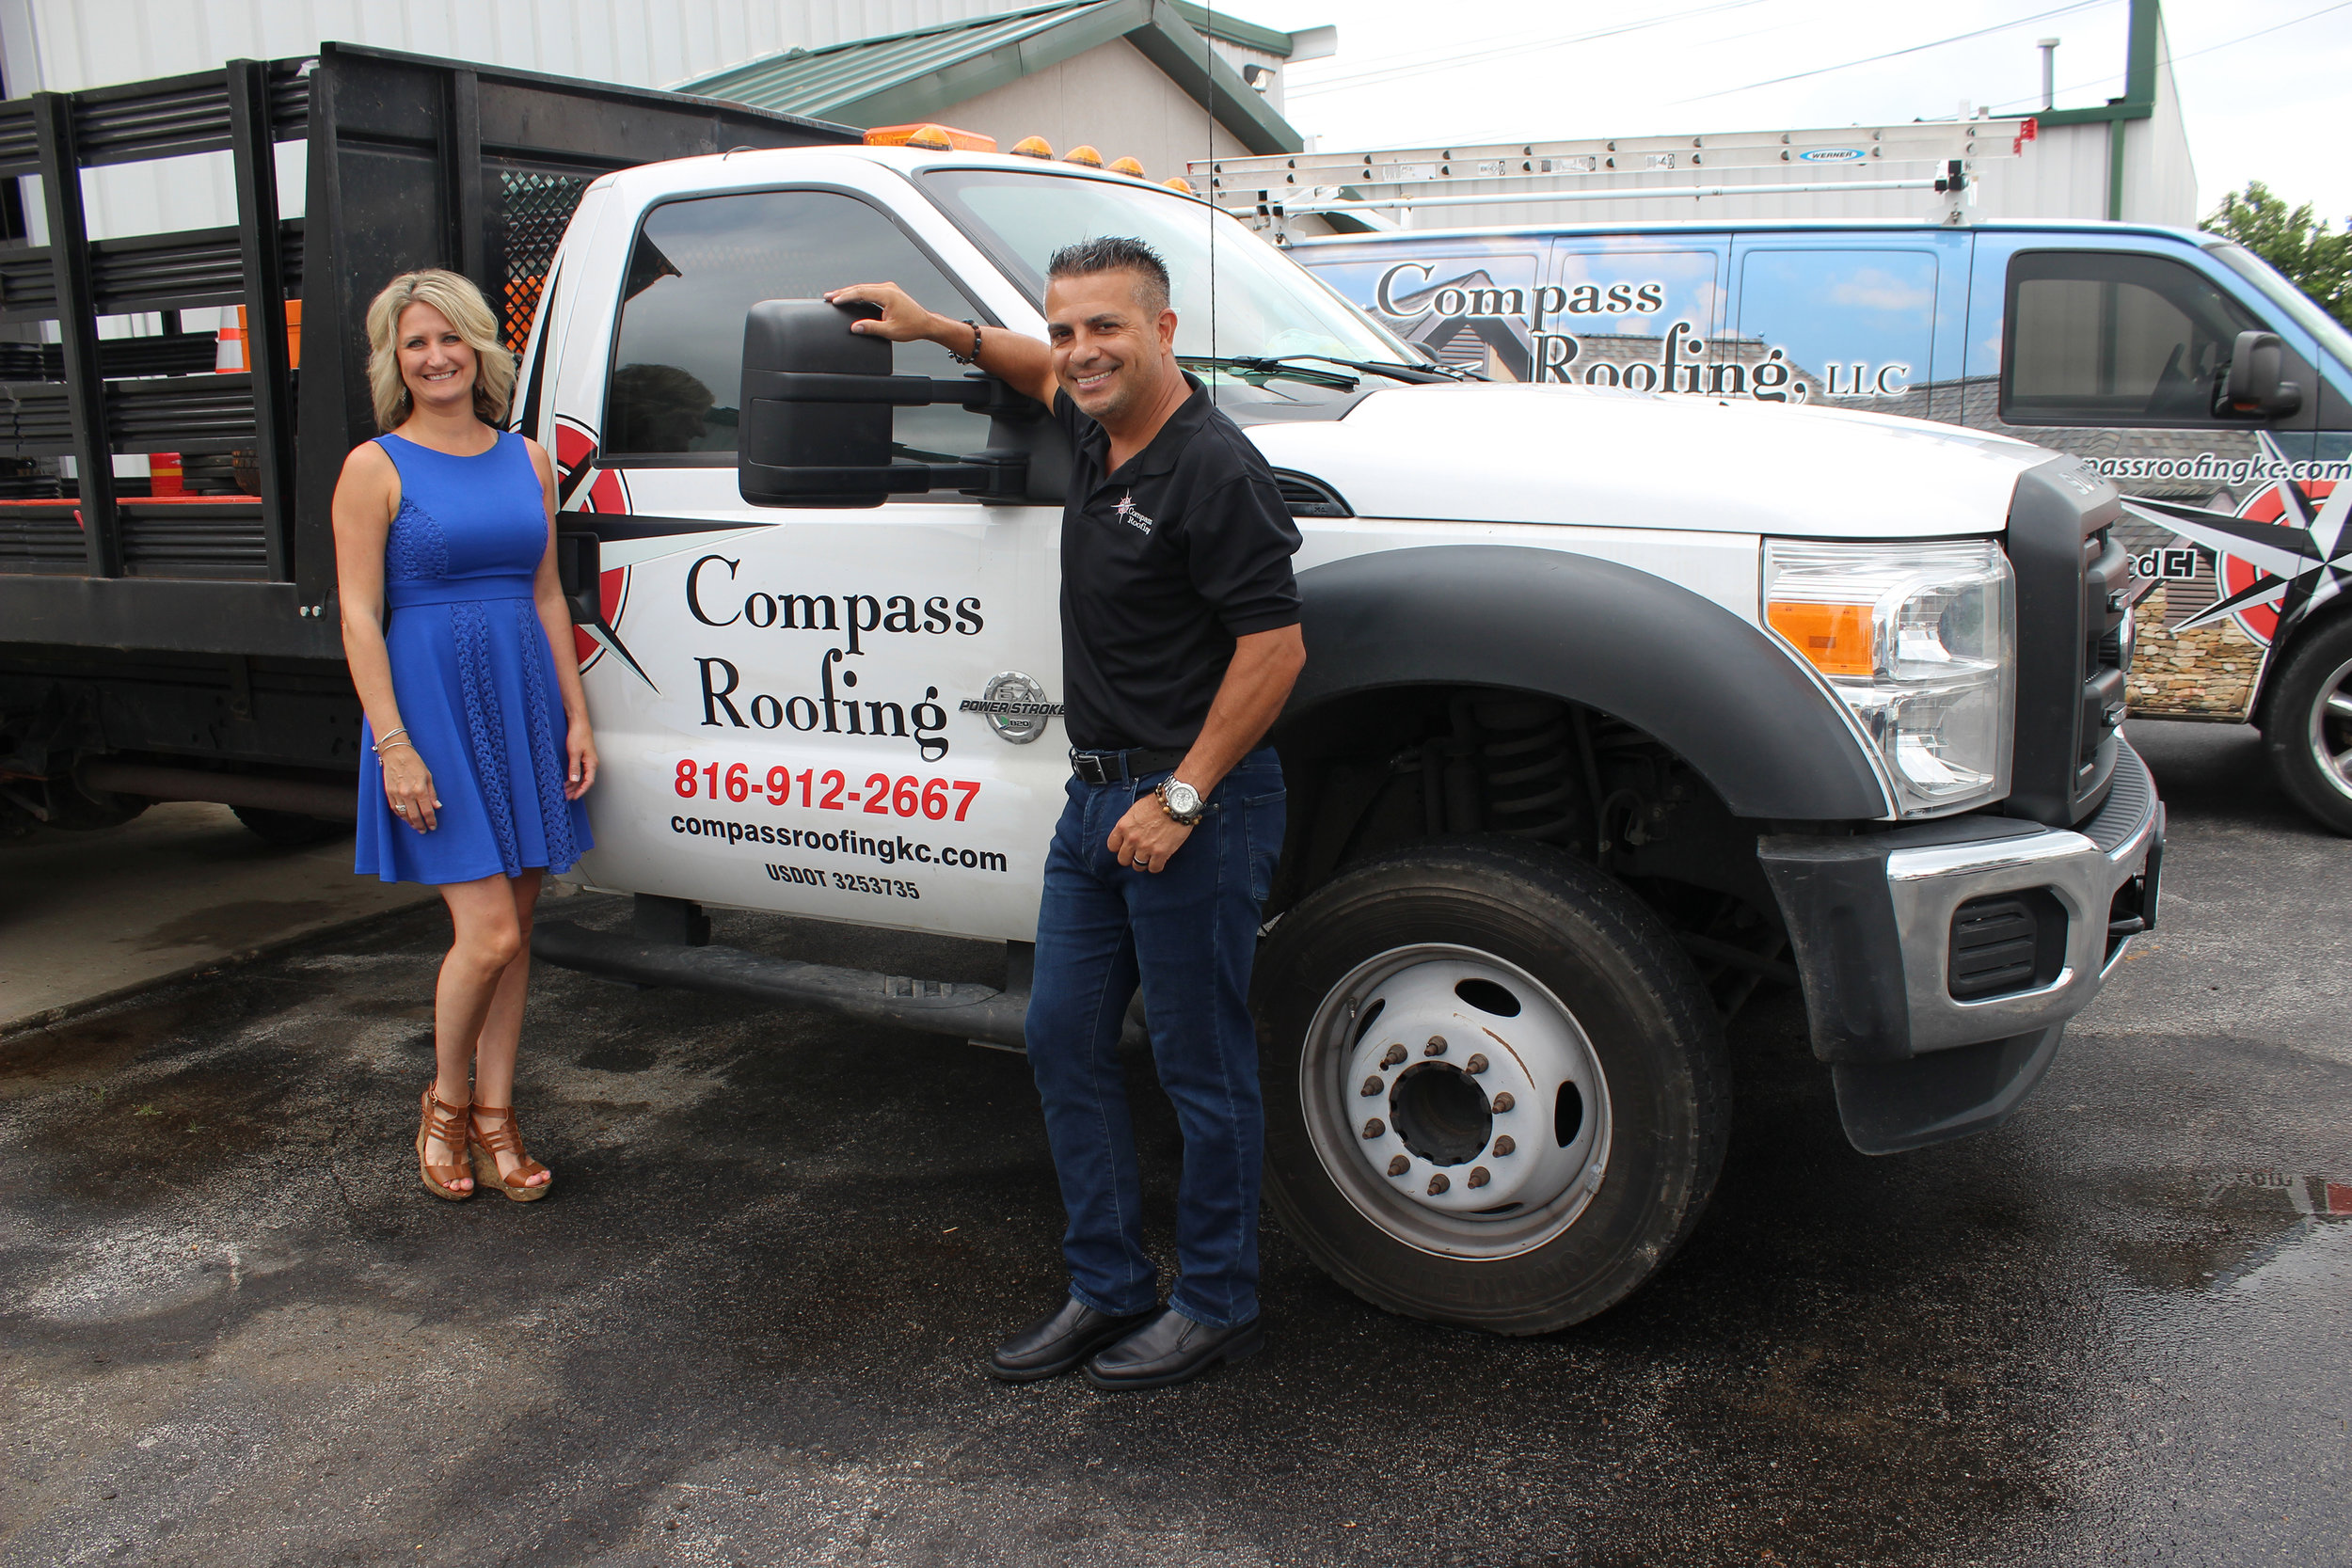 Allan and Krista Arias, Compass Roofing, LLC